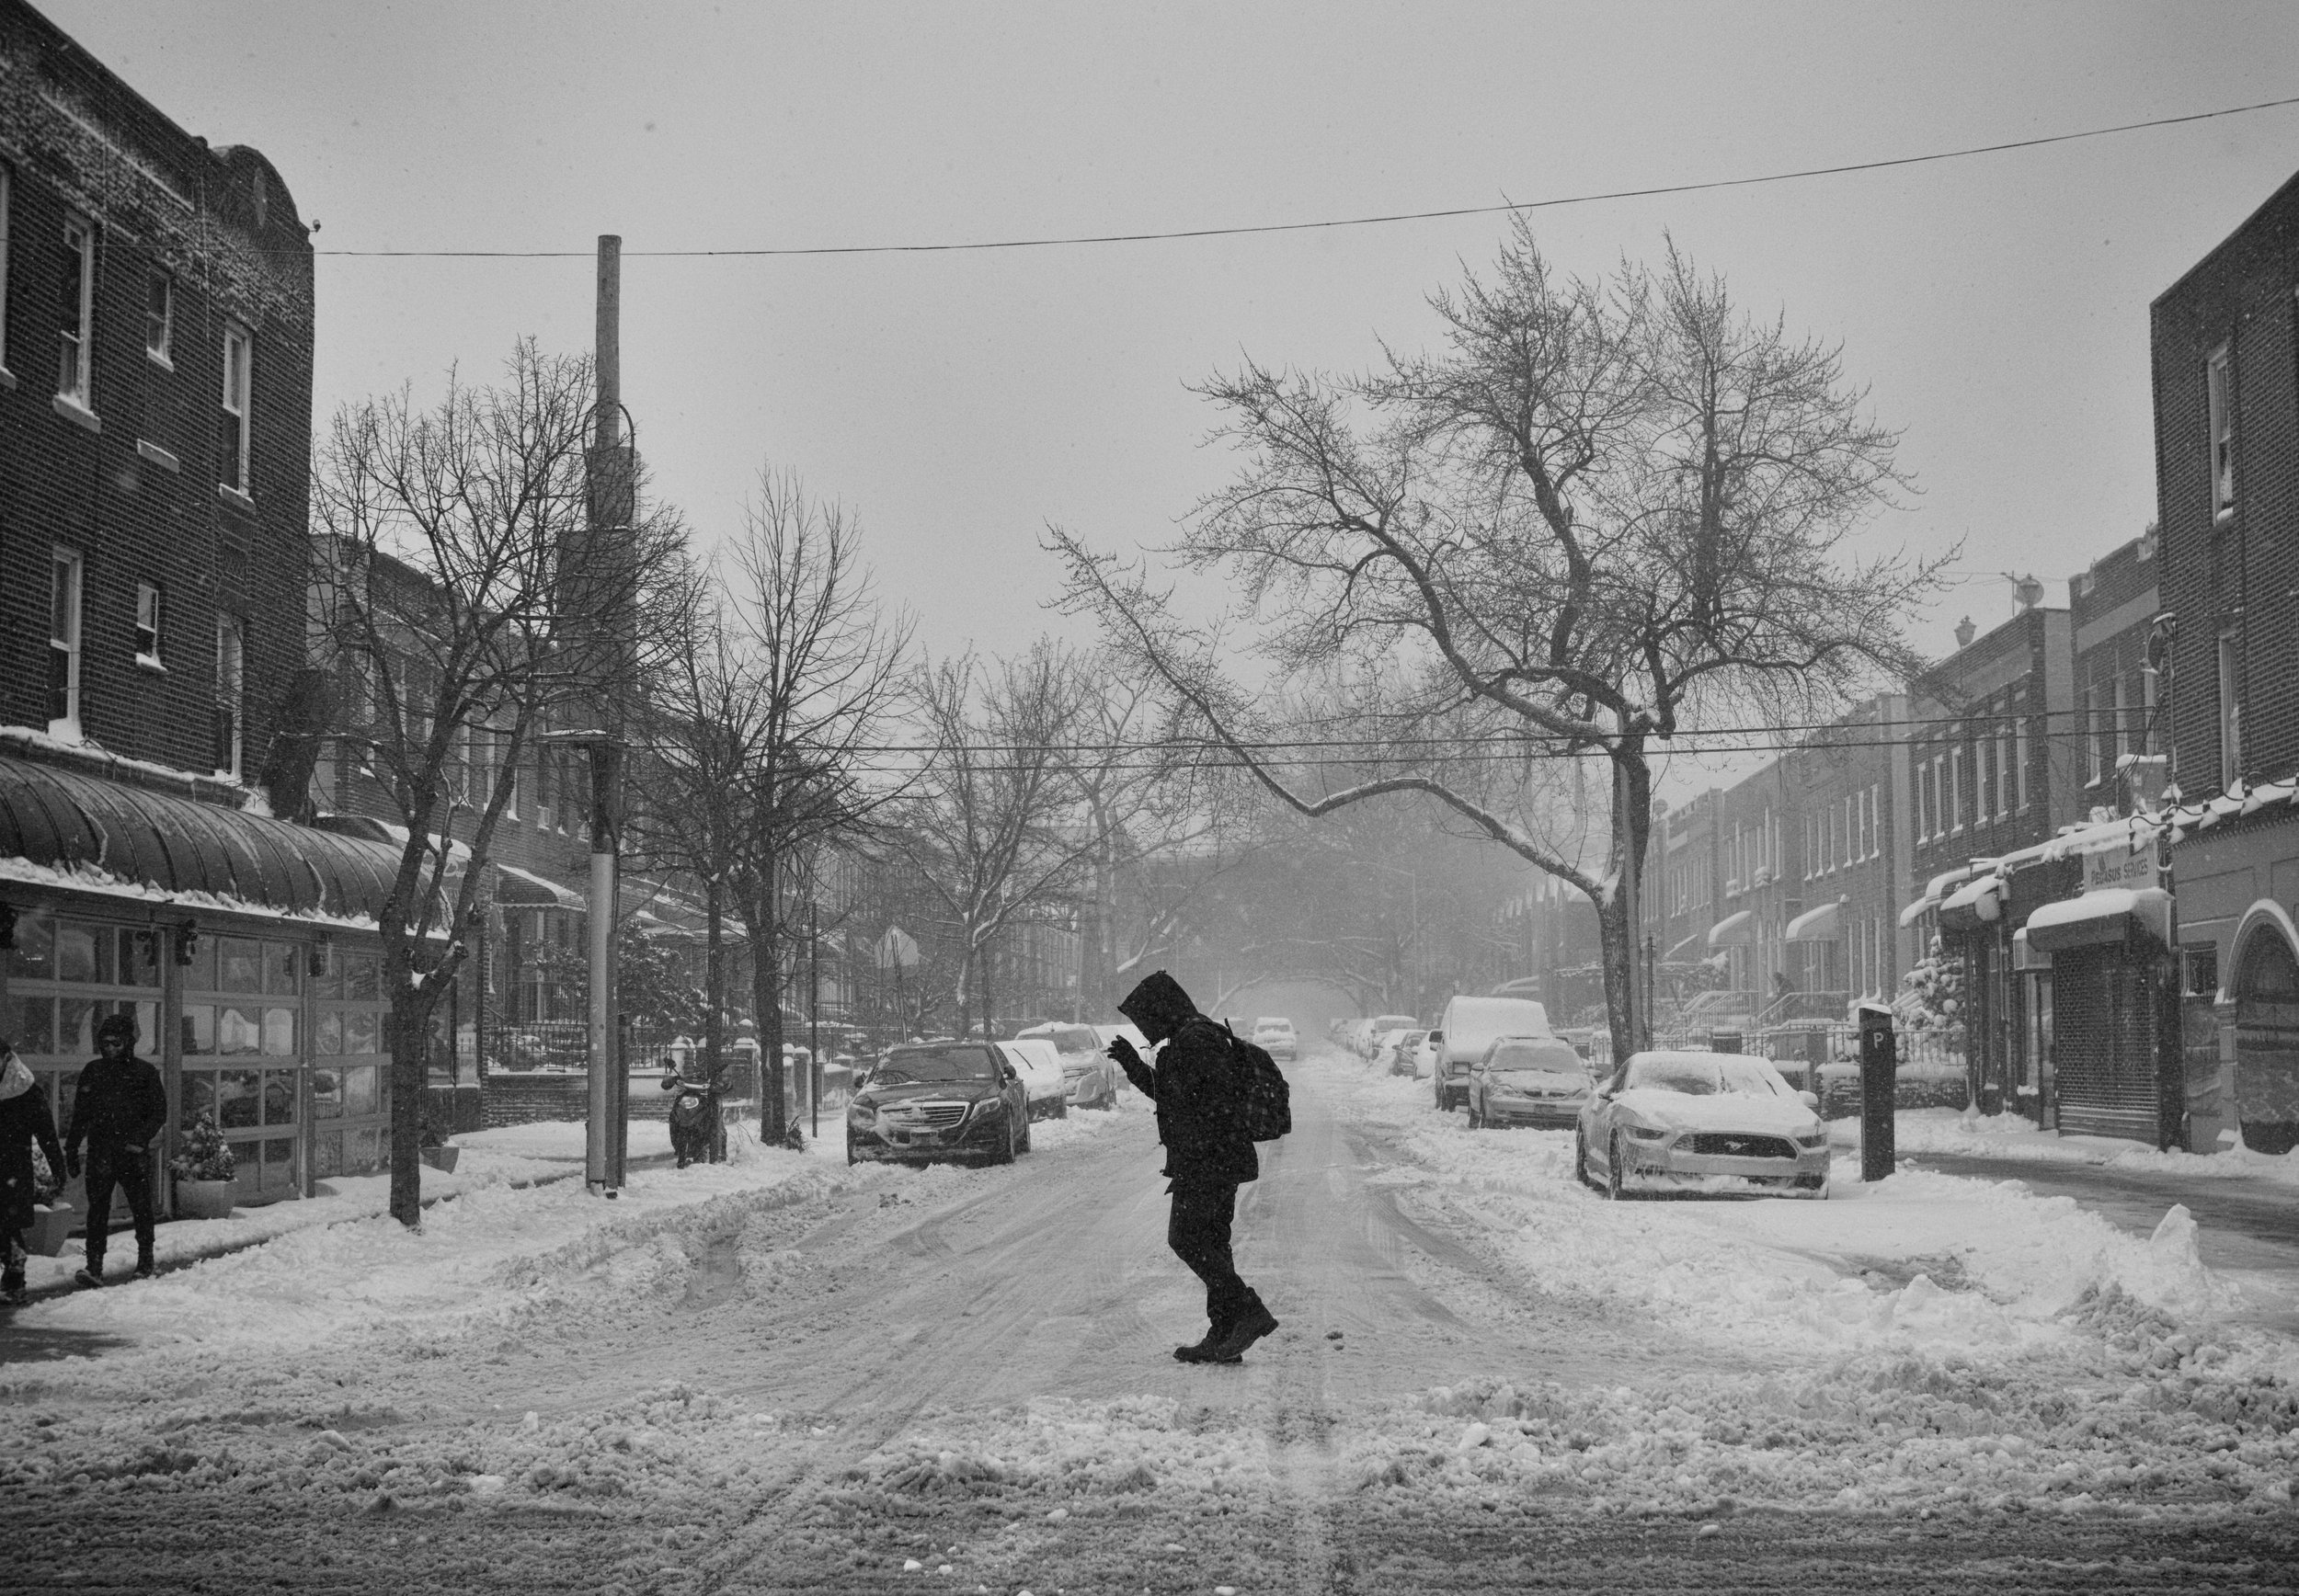 Street Crossing in the Snow